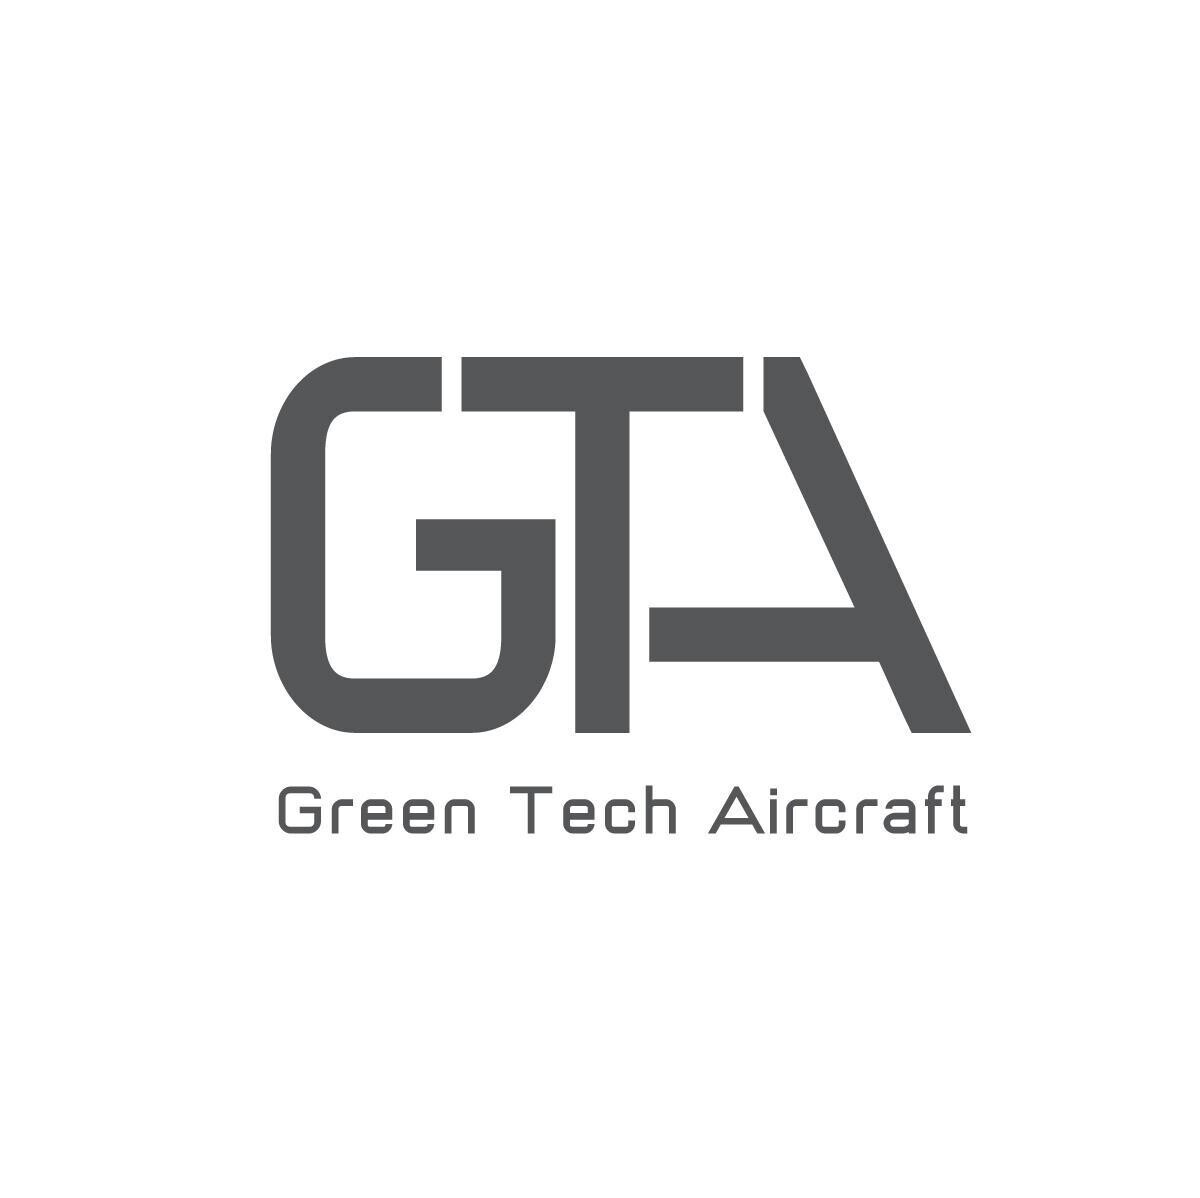 Green Tech Aircraft